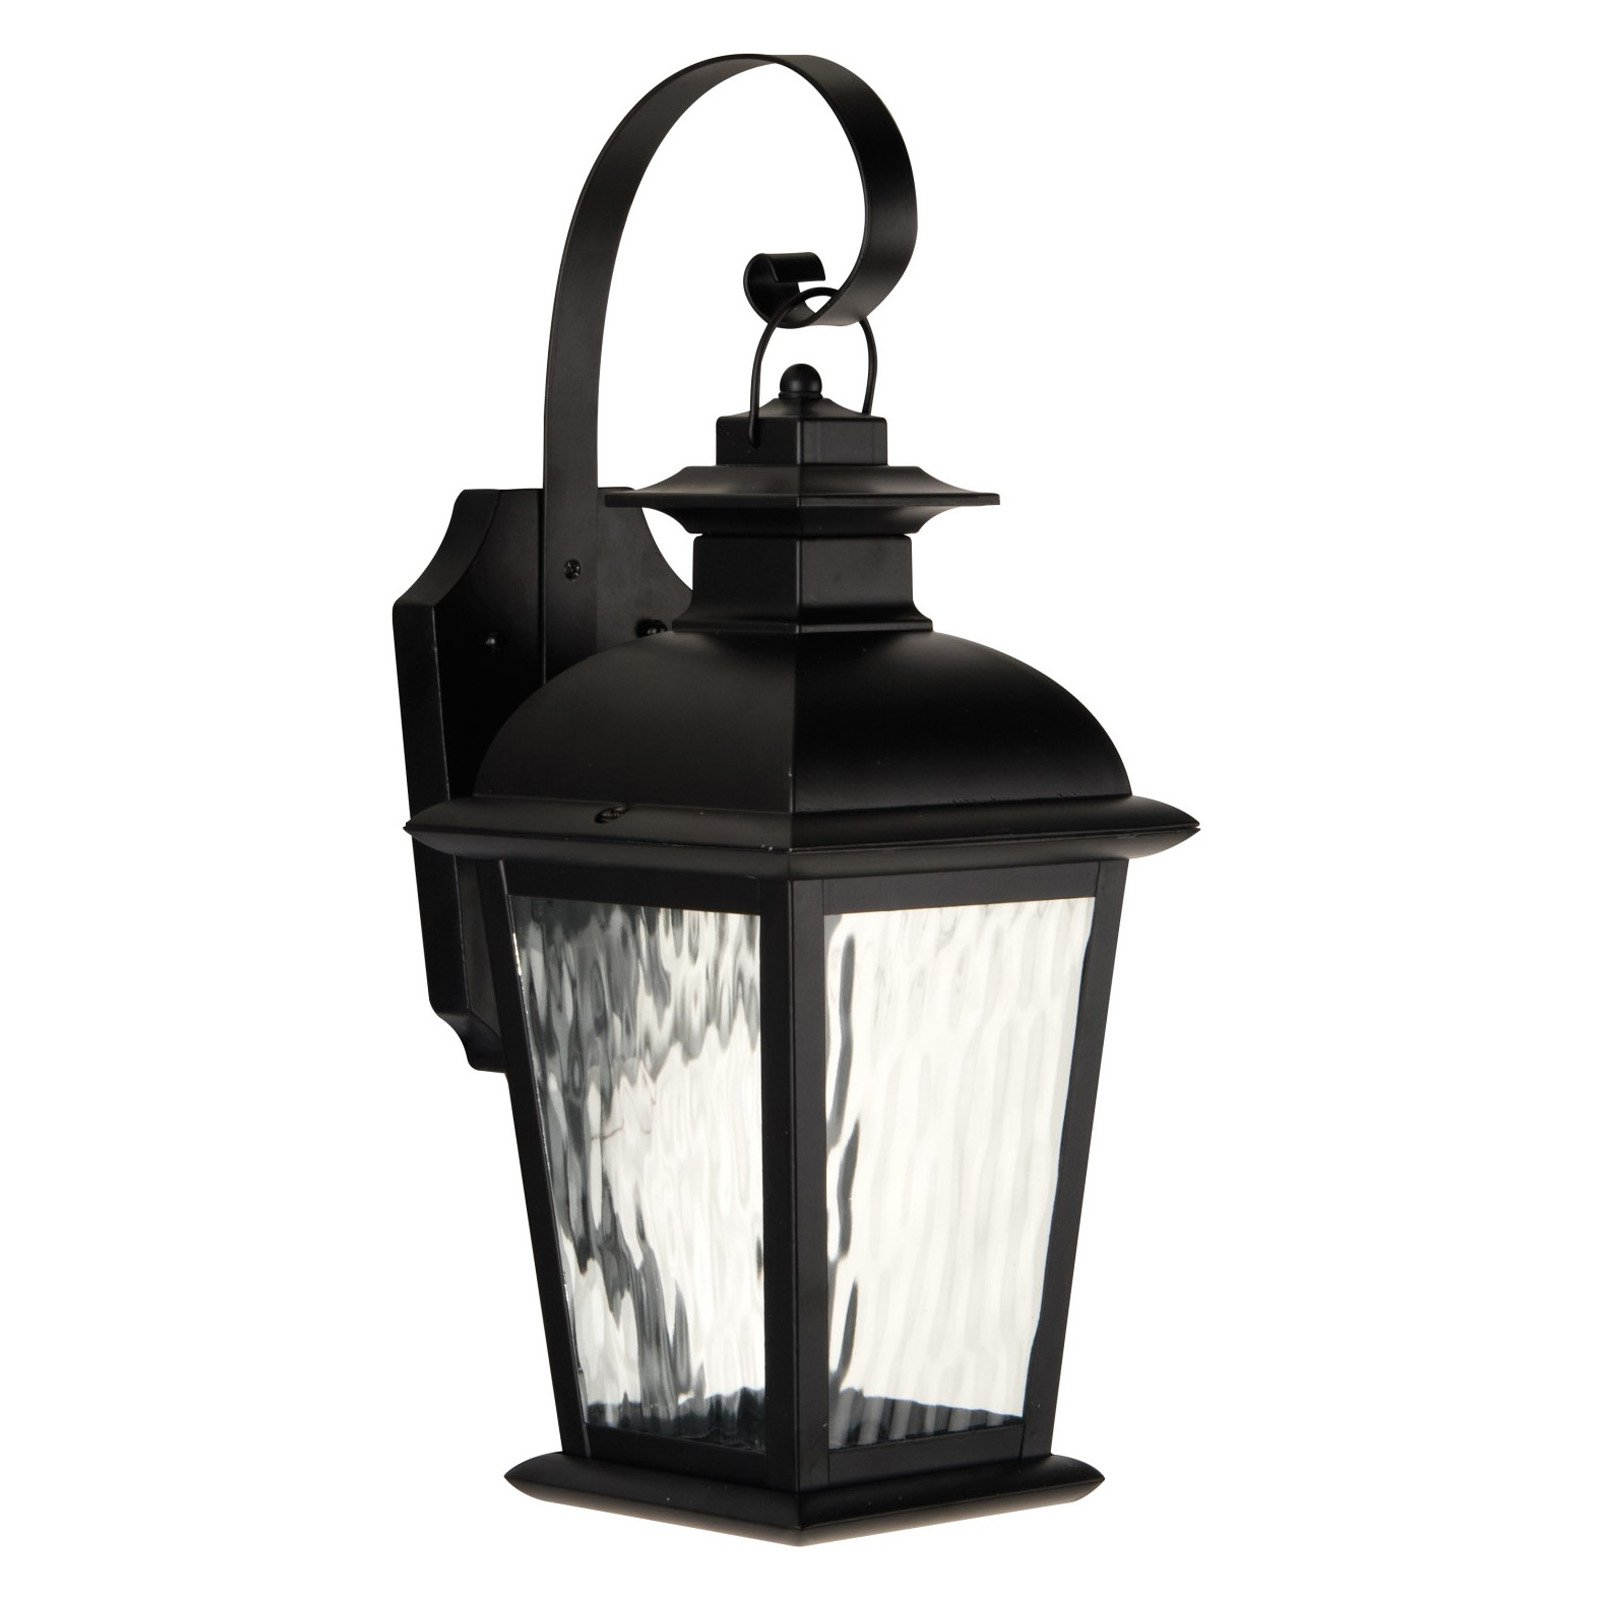 Craftmade Branbury Z57 Outdoor Wall Light